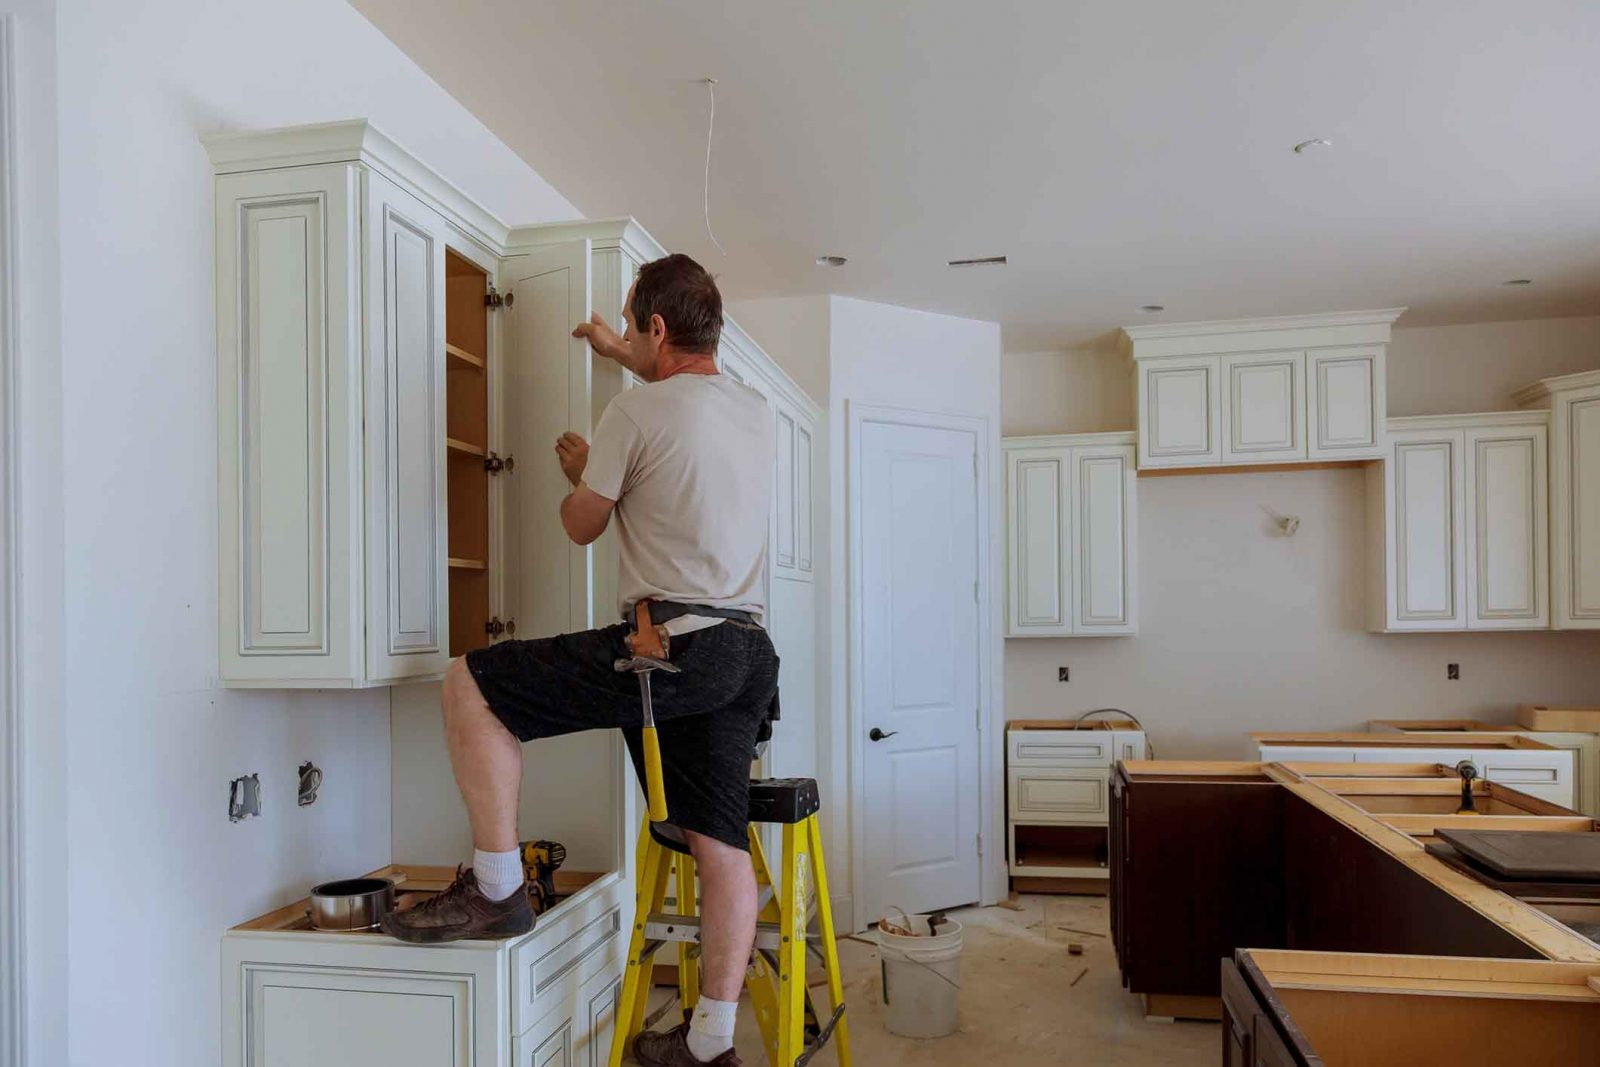 Trusted Cabinetry Fabrication Services In Stockton Ca 95205 209 603 1546